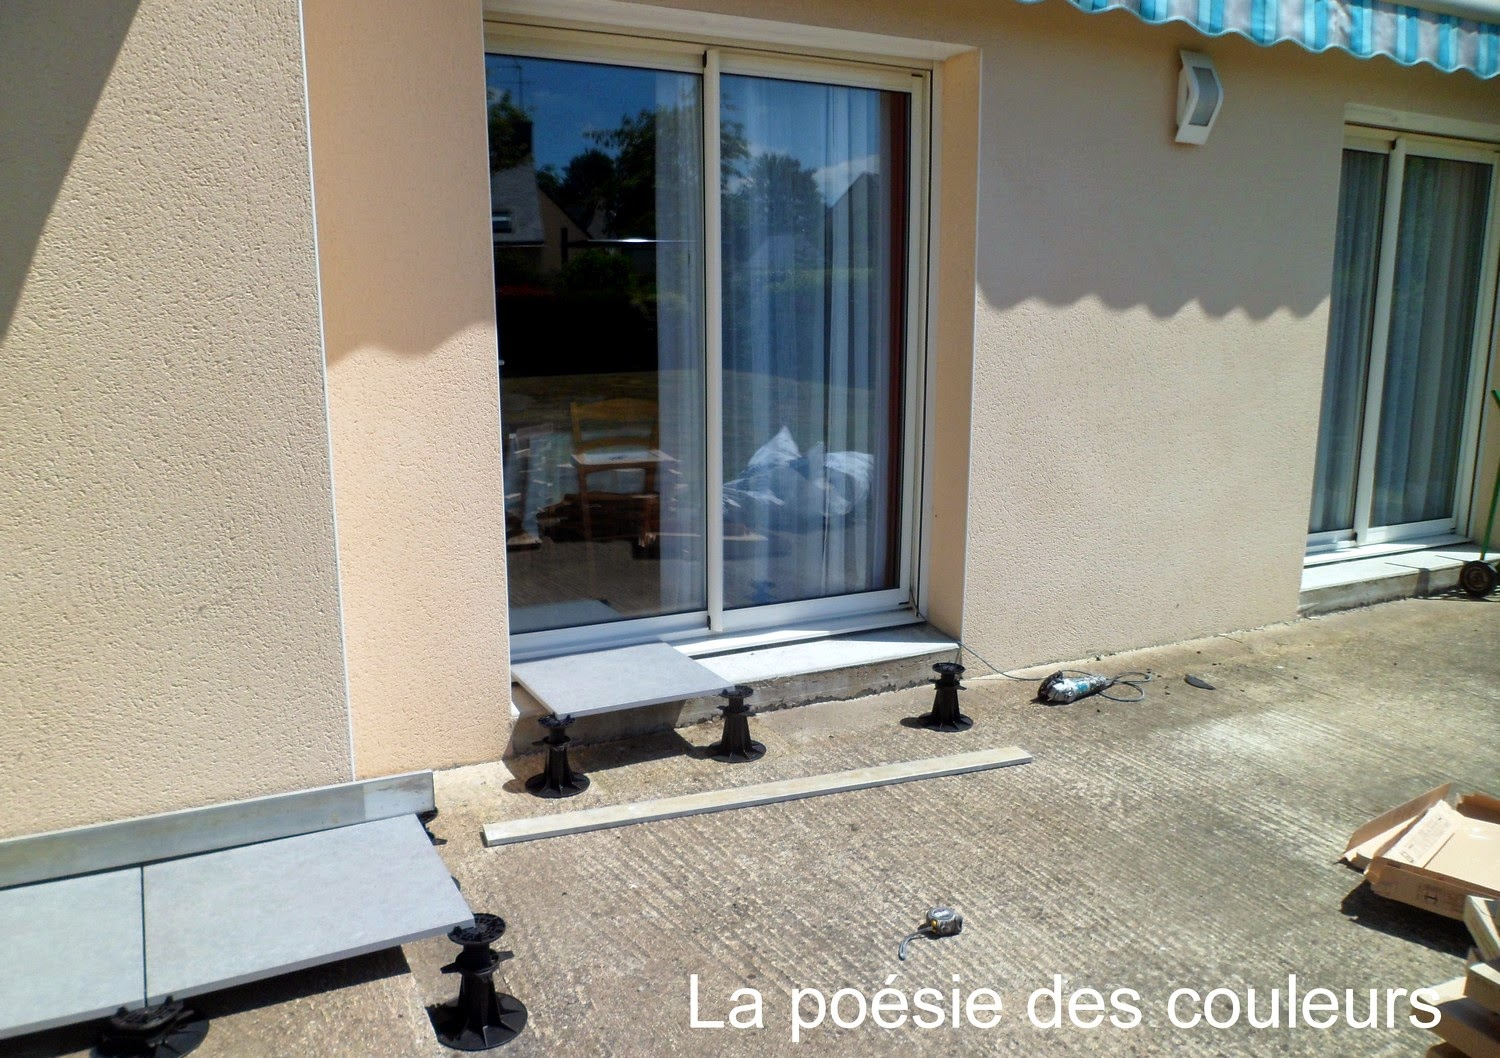 La po sie des couleurs terrasse en carrelage sur plots for Carrelage sur plots